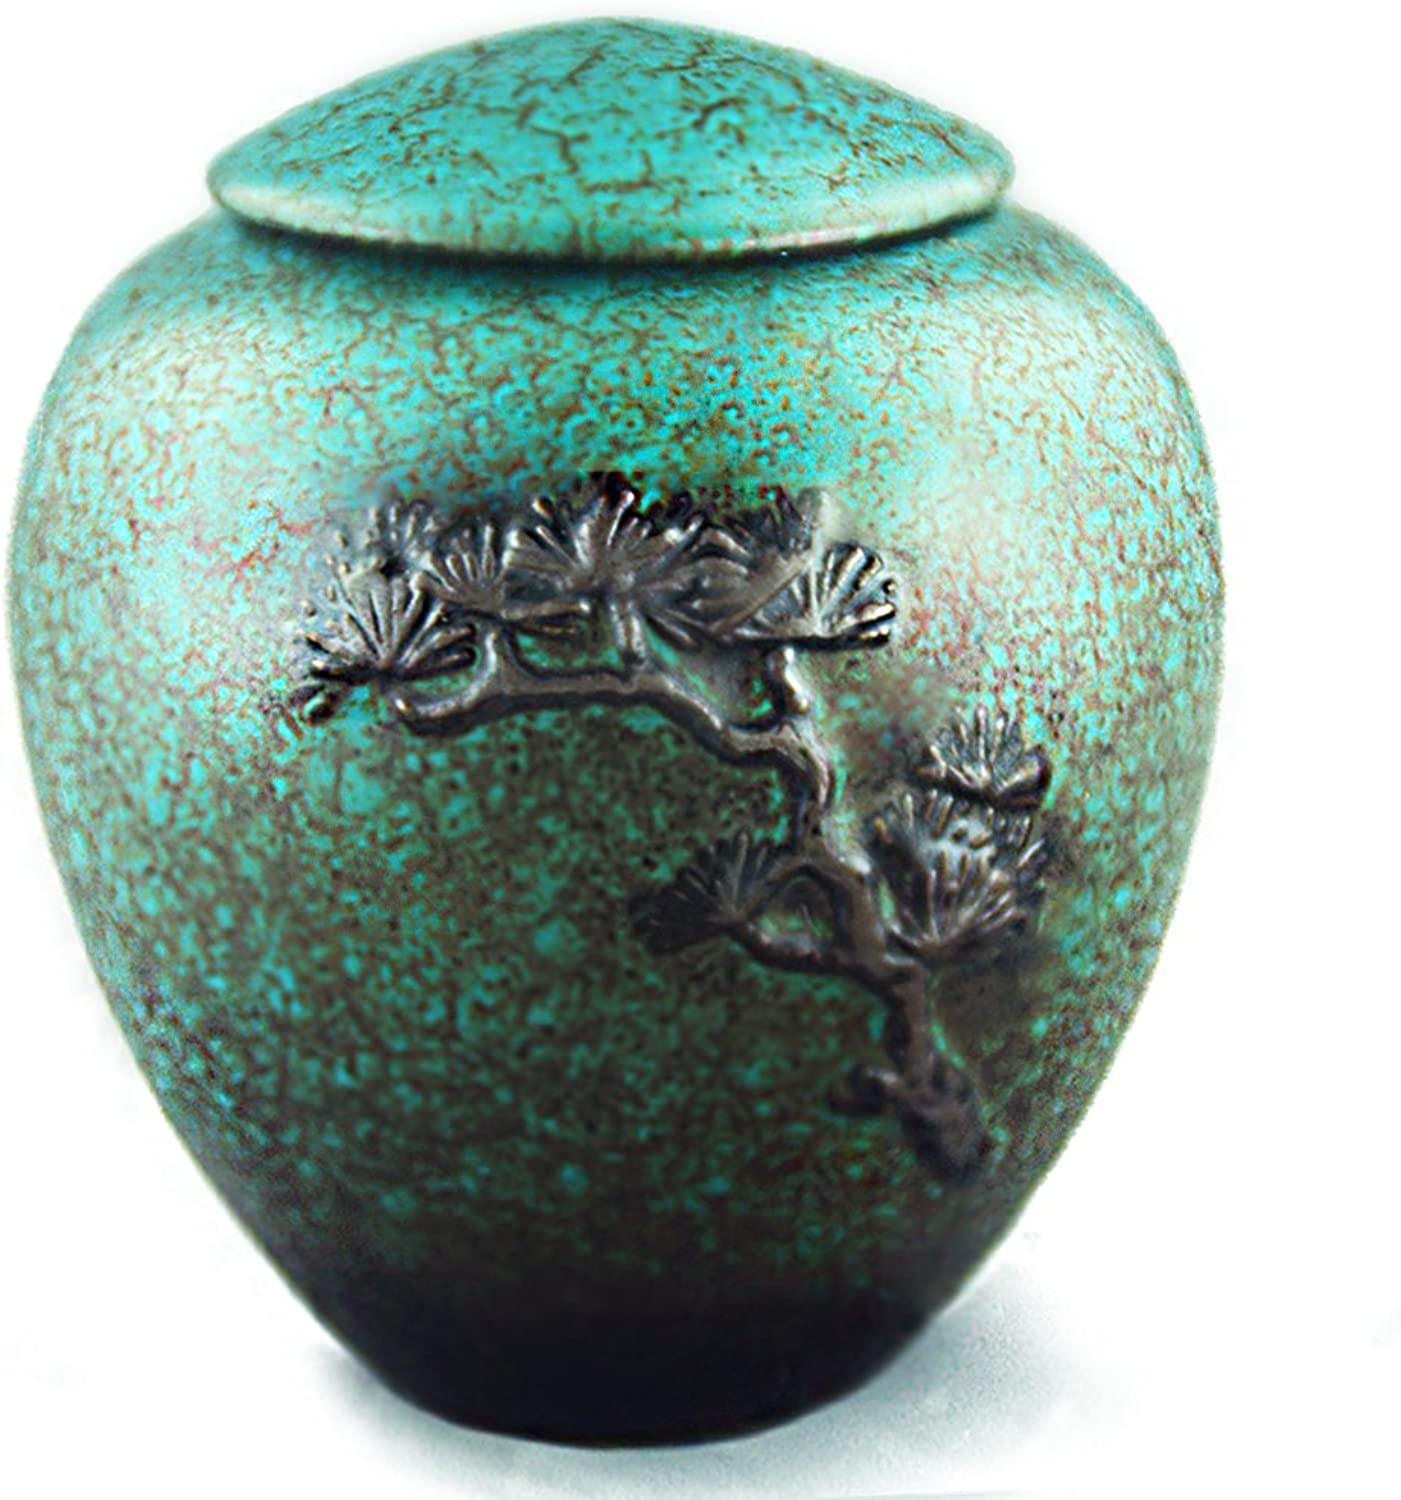 MEILINXU 5  Medium-Sized, Funeral Urn Cremation Urns for Human Ashes Adult - Hand Made in Ceramics with Manual Relief - Display Burial Urns at Home or in Niche at Columbarium (Green Tree of Life